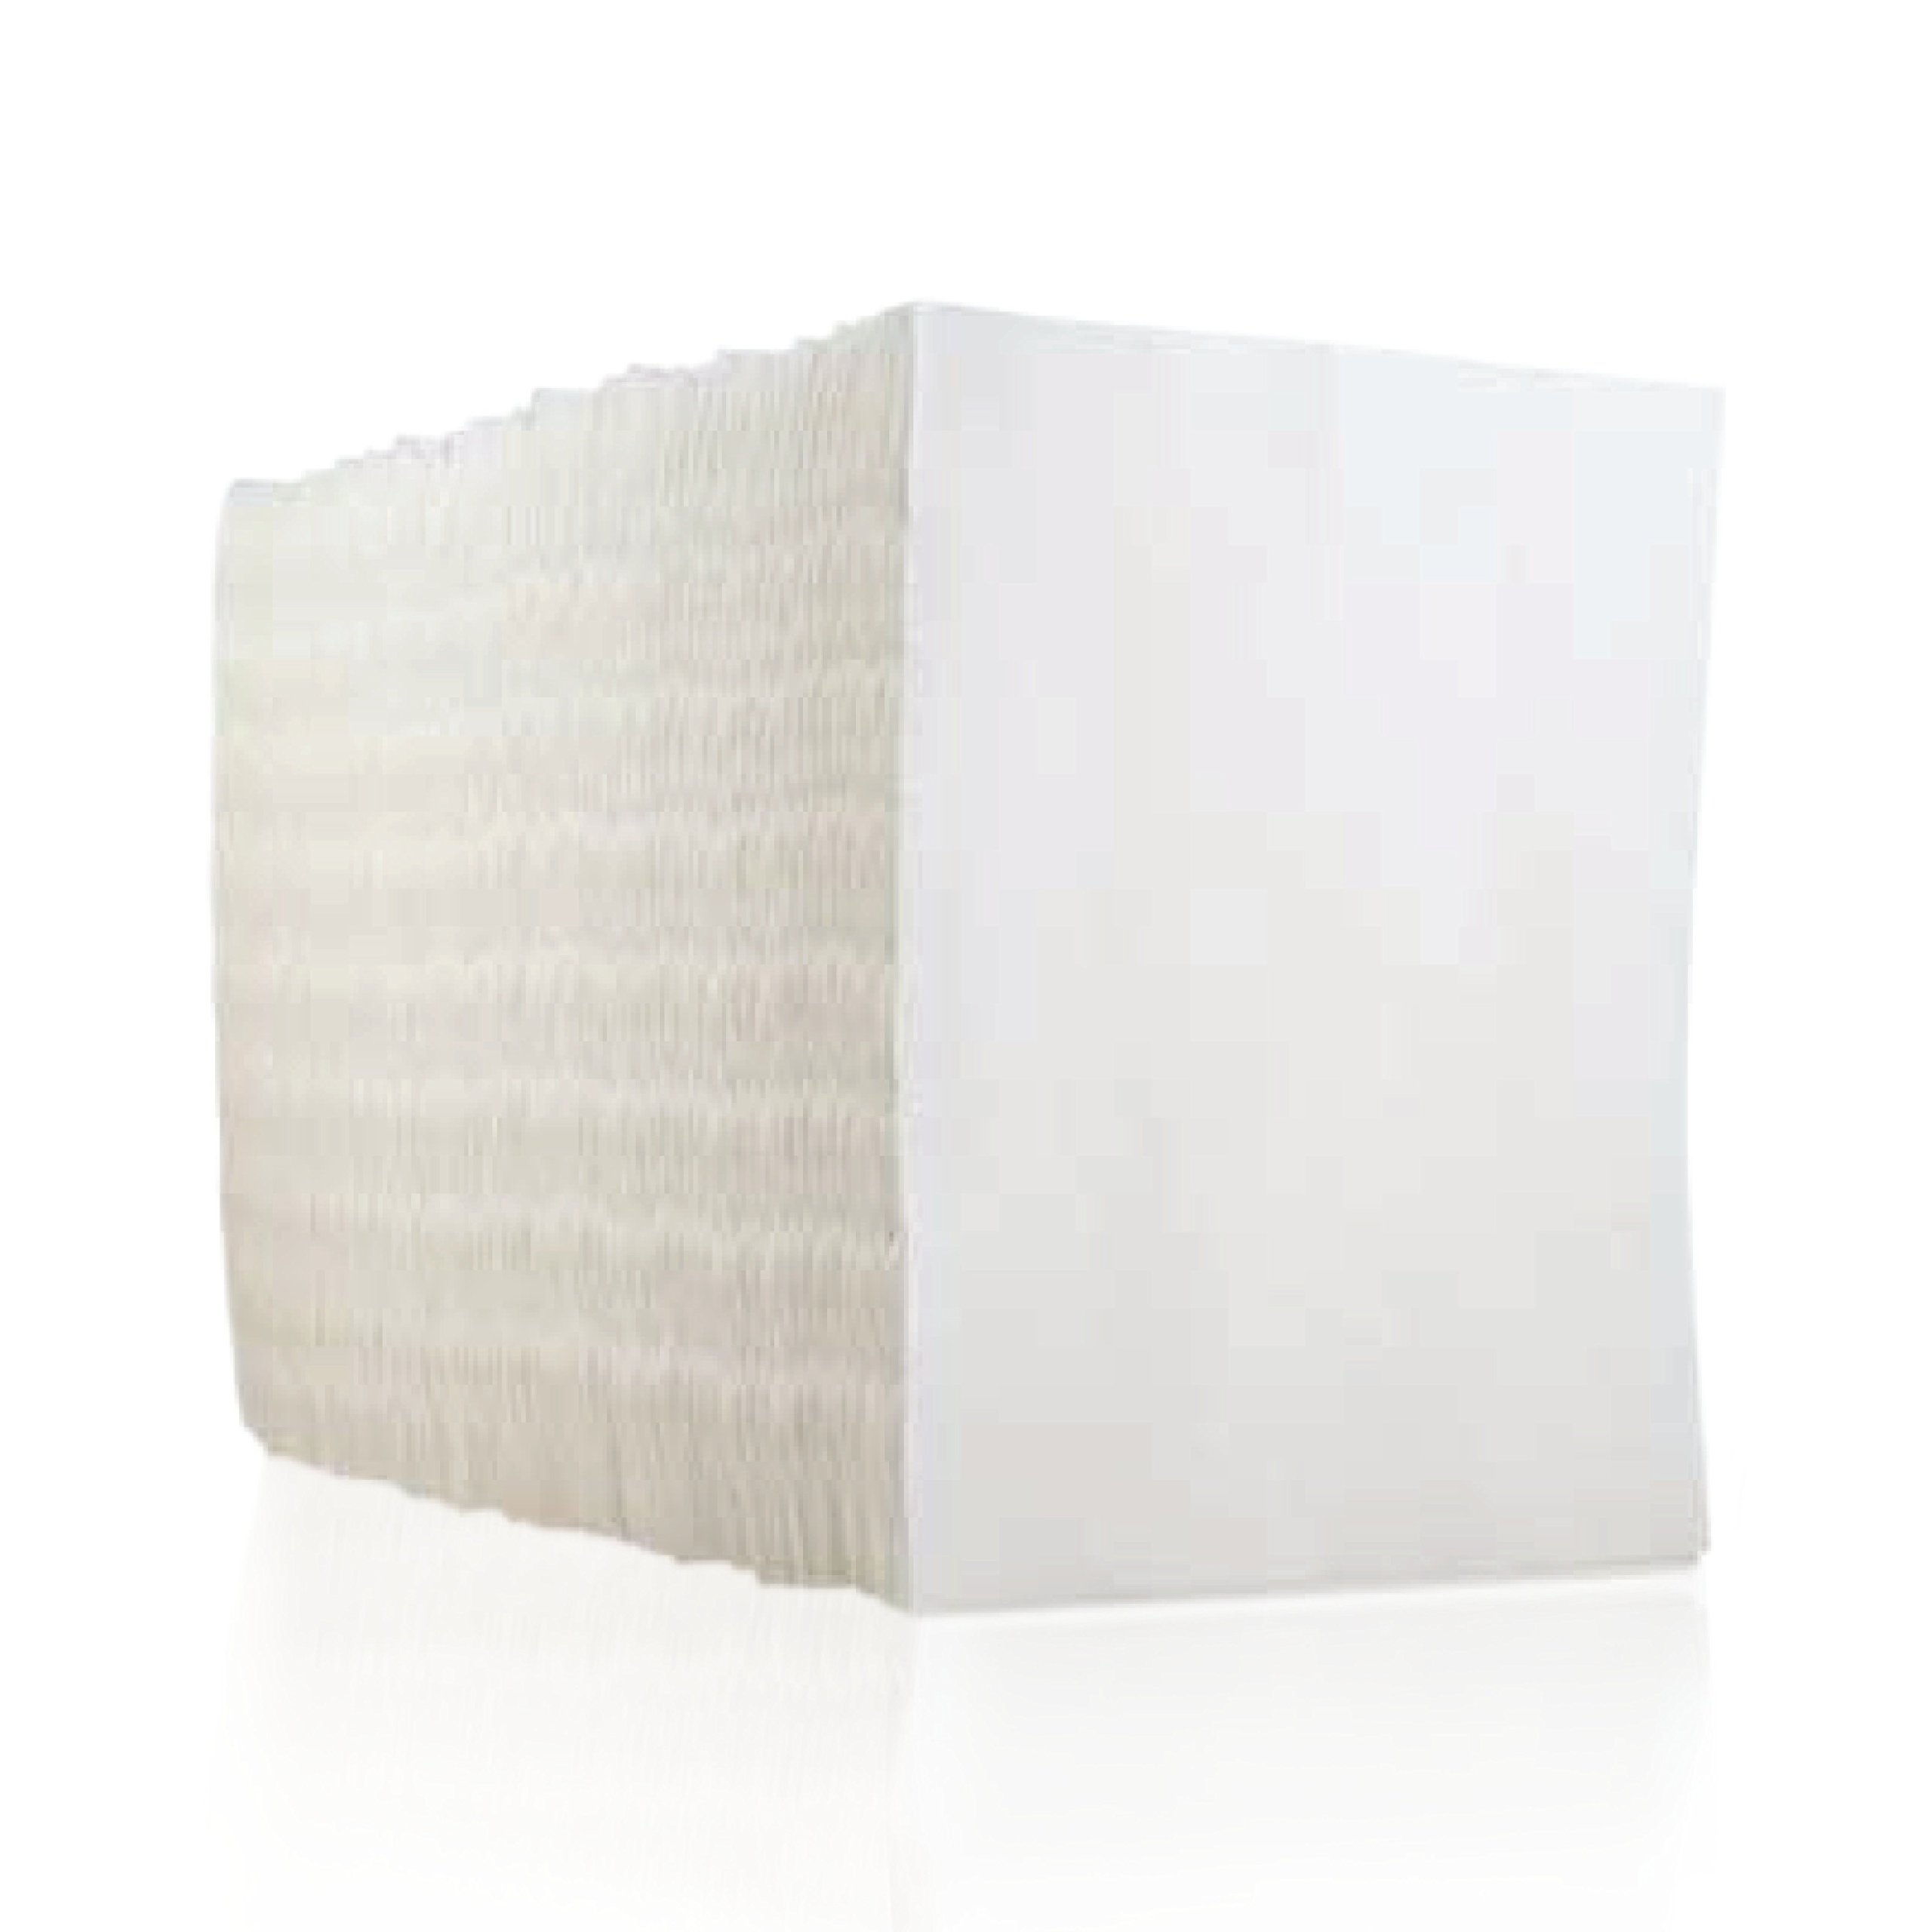 Replacement for Kenmore 32-14909 Humidifier Wick Filter (2pk) by Filter-Monster.com